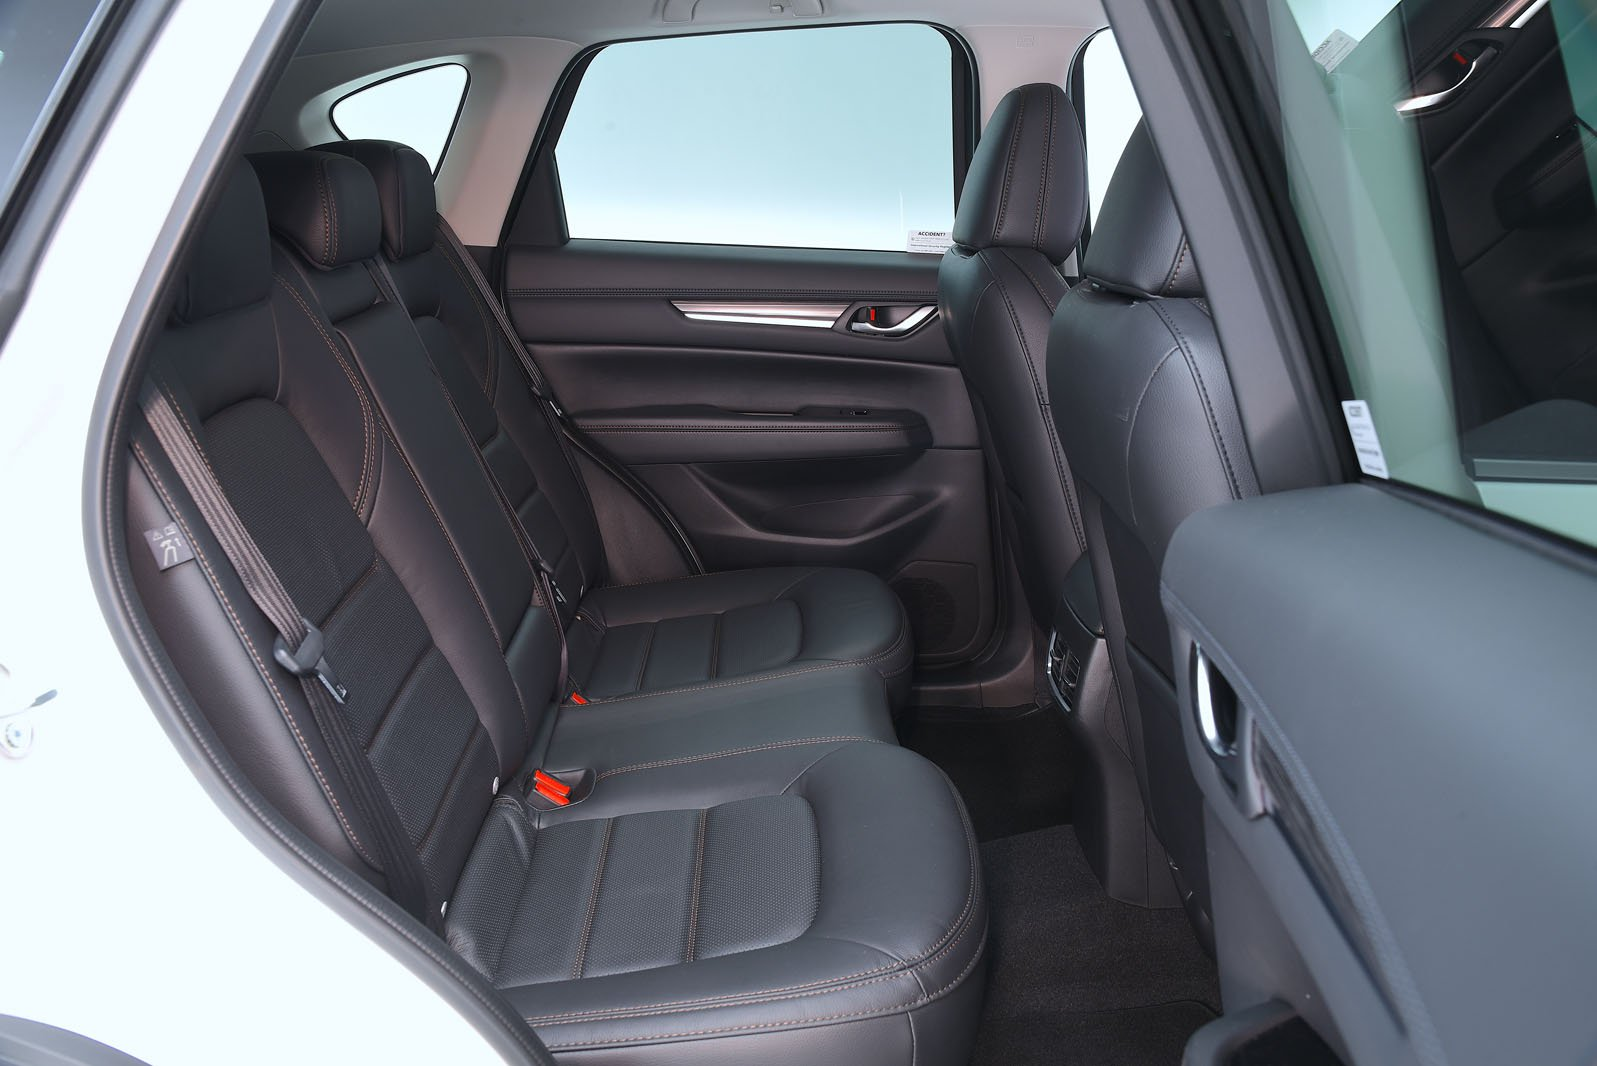 Mazda Cx 5 Cargo Space Dimensions >> Mazda Cx 5 Boot Space Size Seats What Car